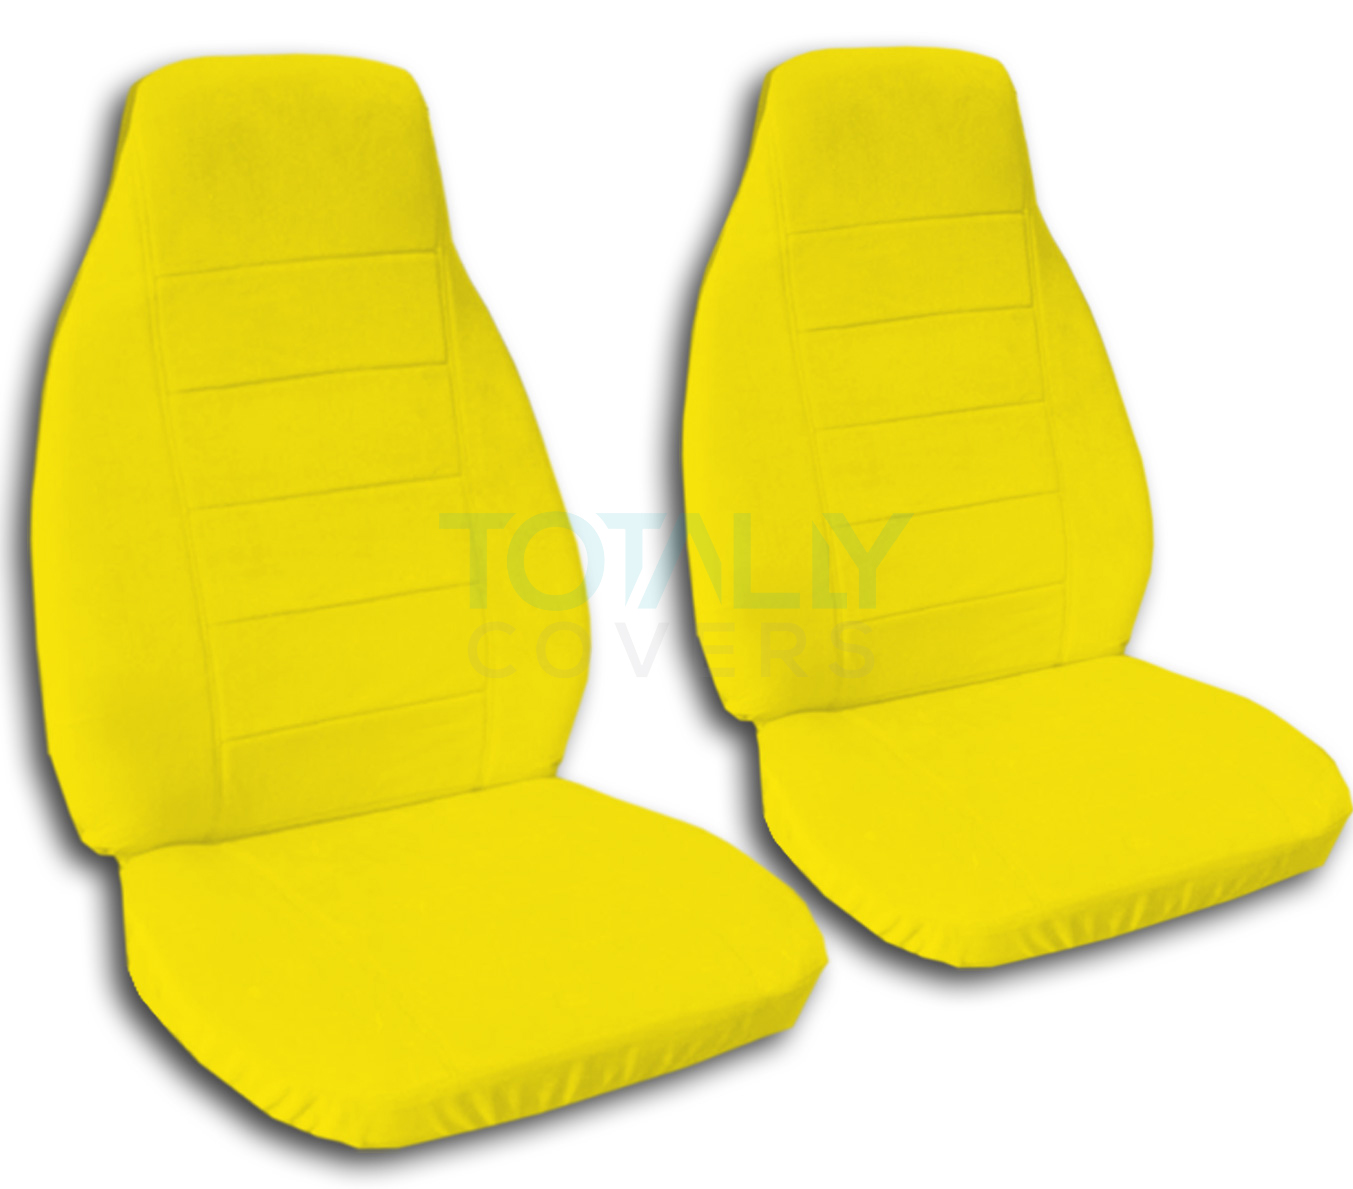 seat covers seat covers yellow. Black Bedroom Furniture Sets. Home Design Ideas